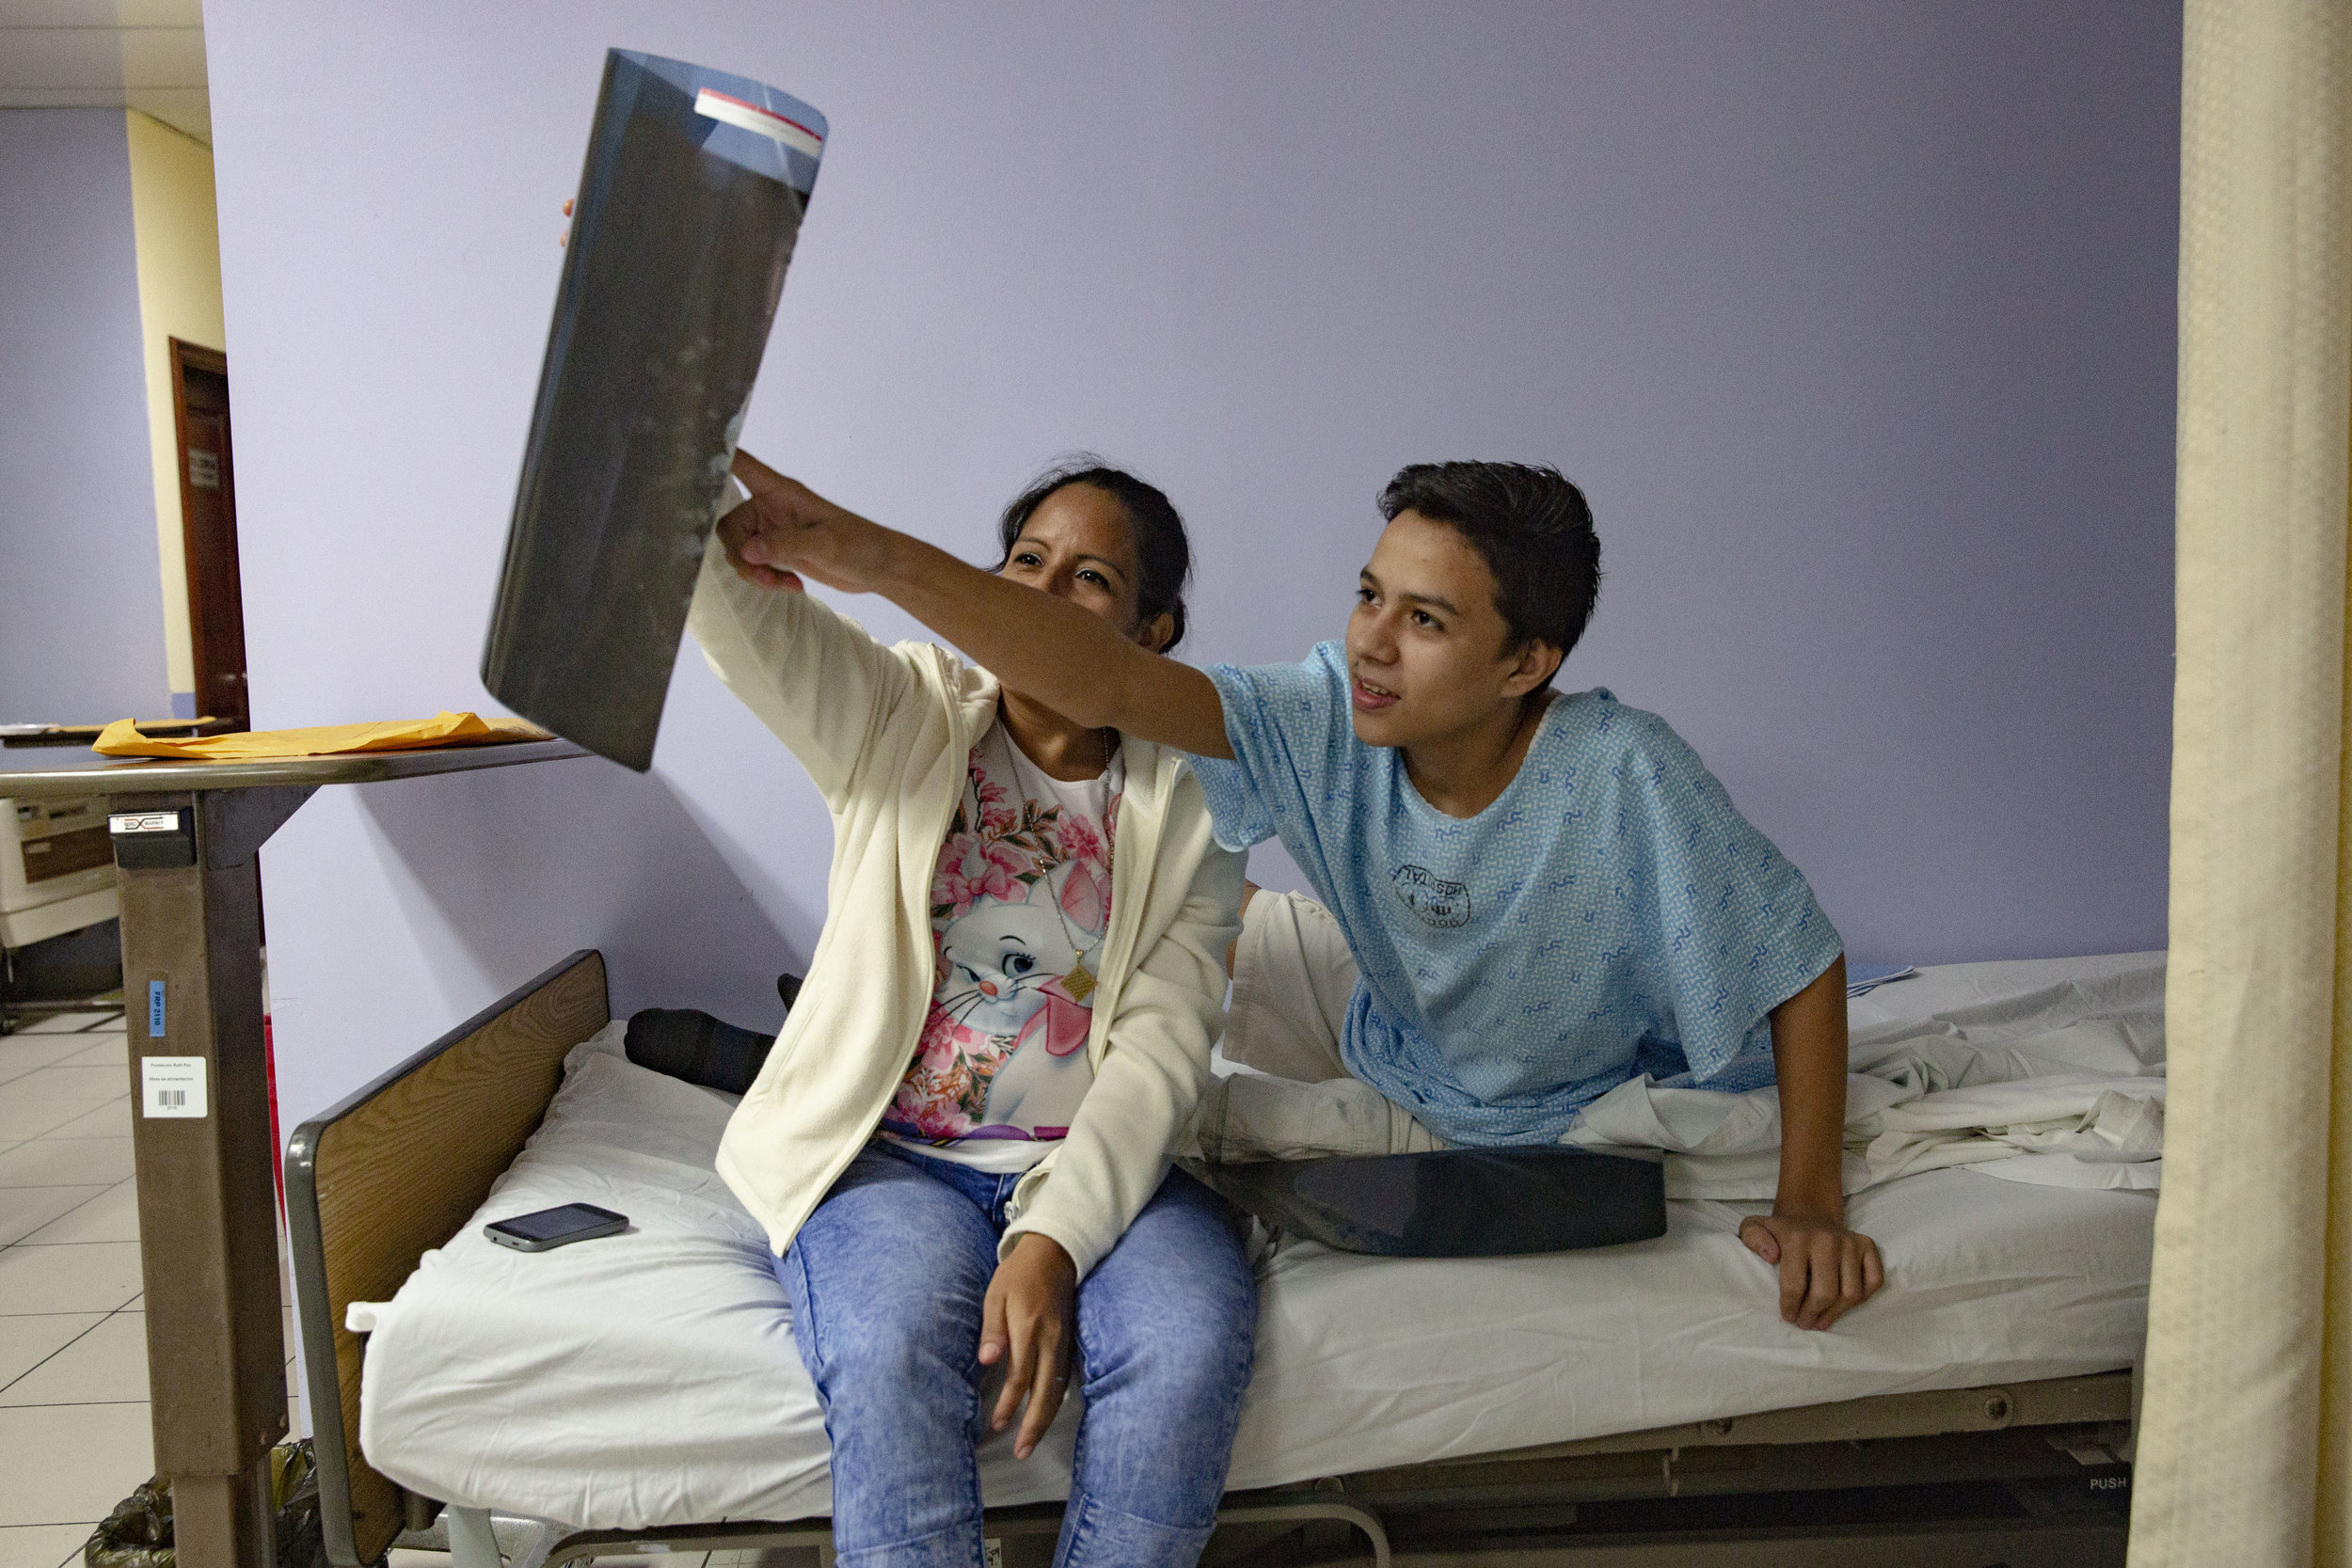 A boy and her mother look at the results of an ultrasound before his operation the following day at the Ruth Paz hospital in San Pedro Sula, Honduras.